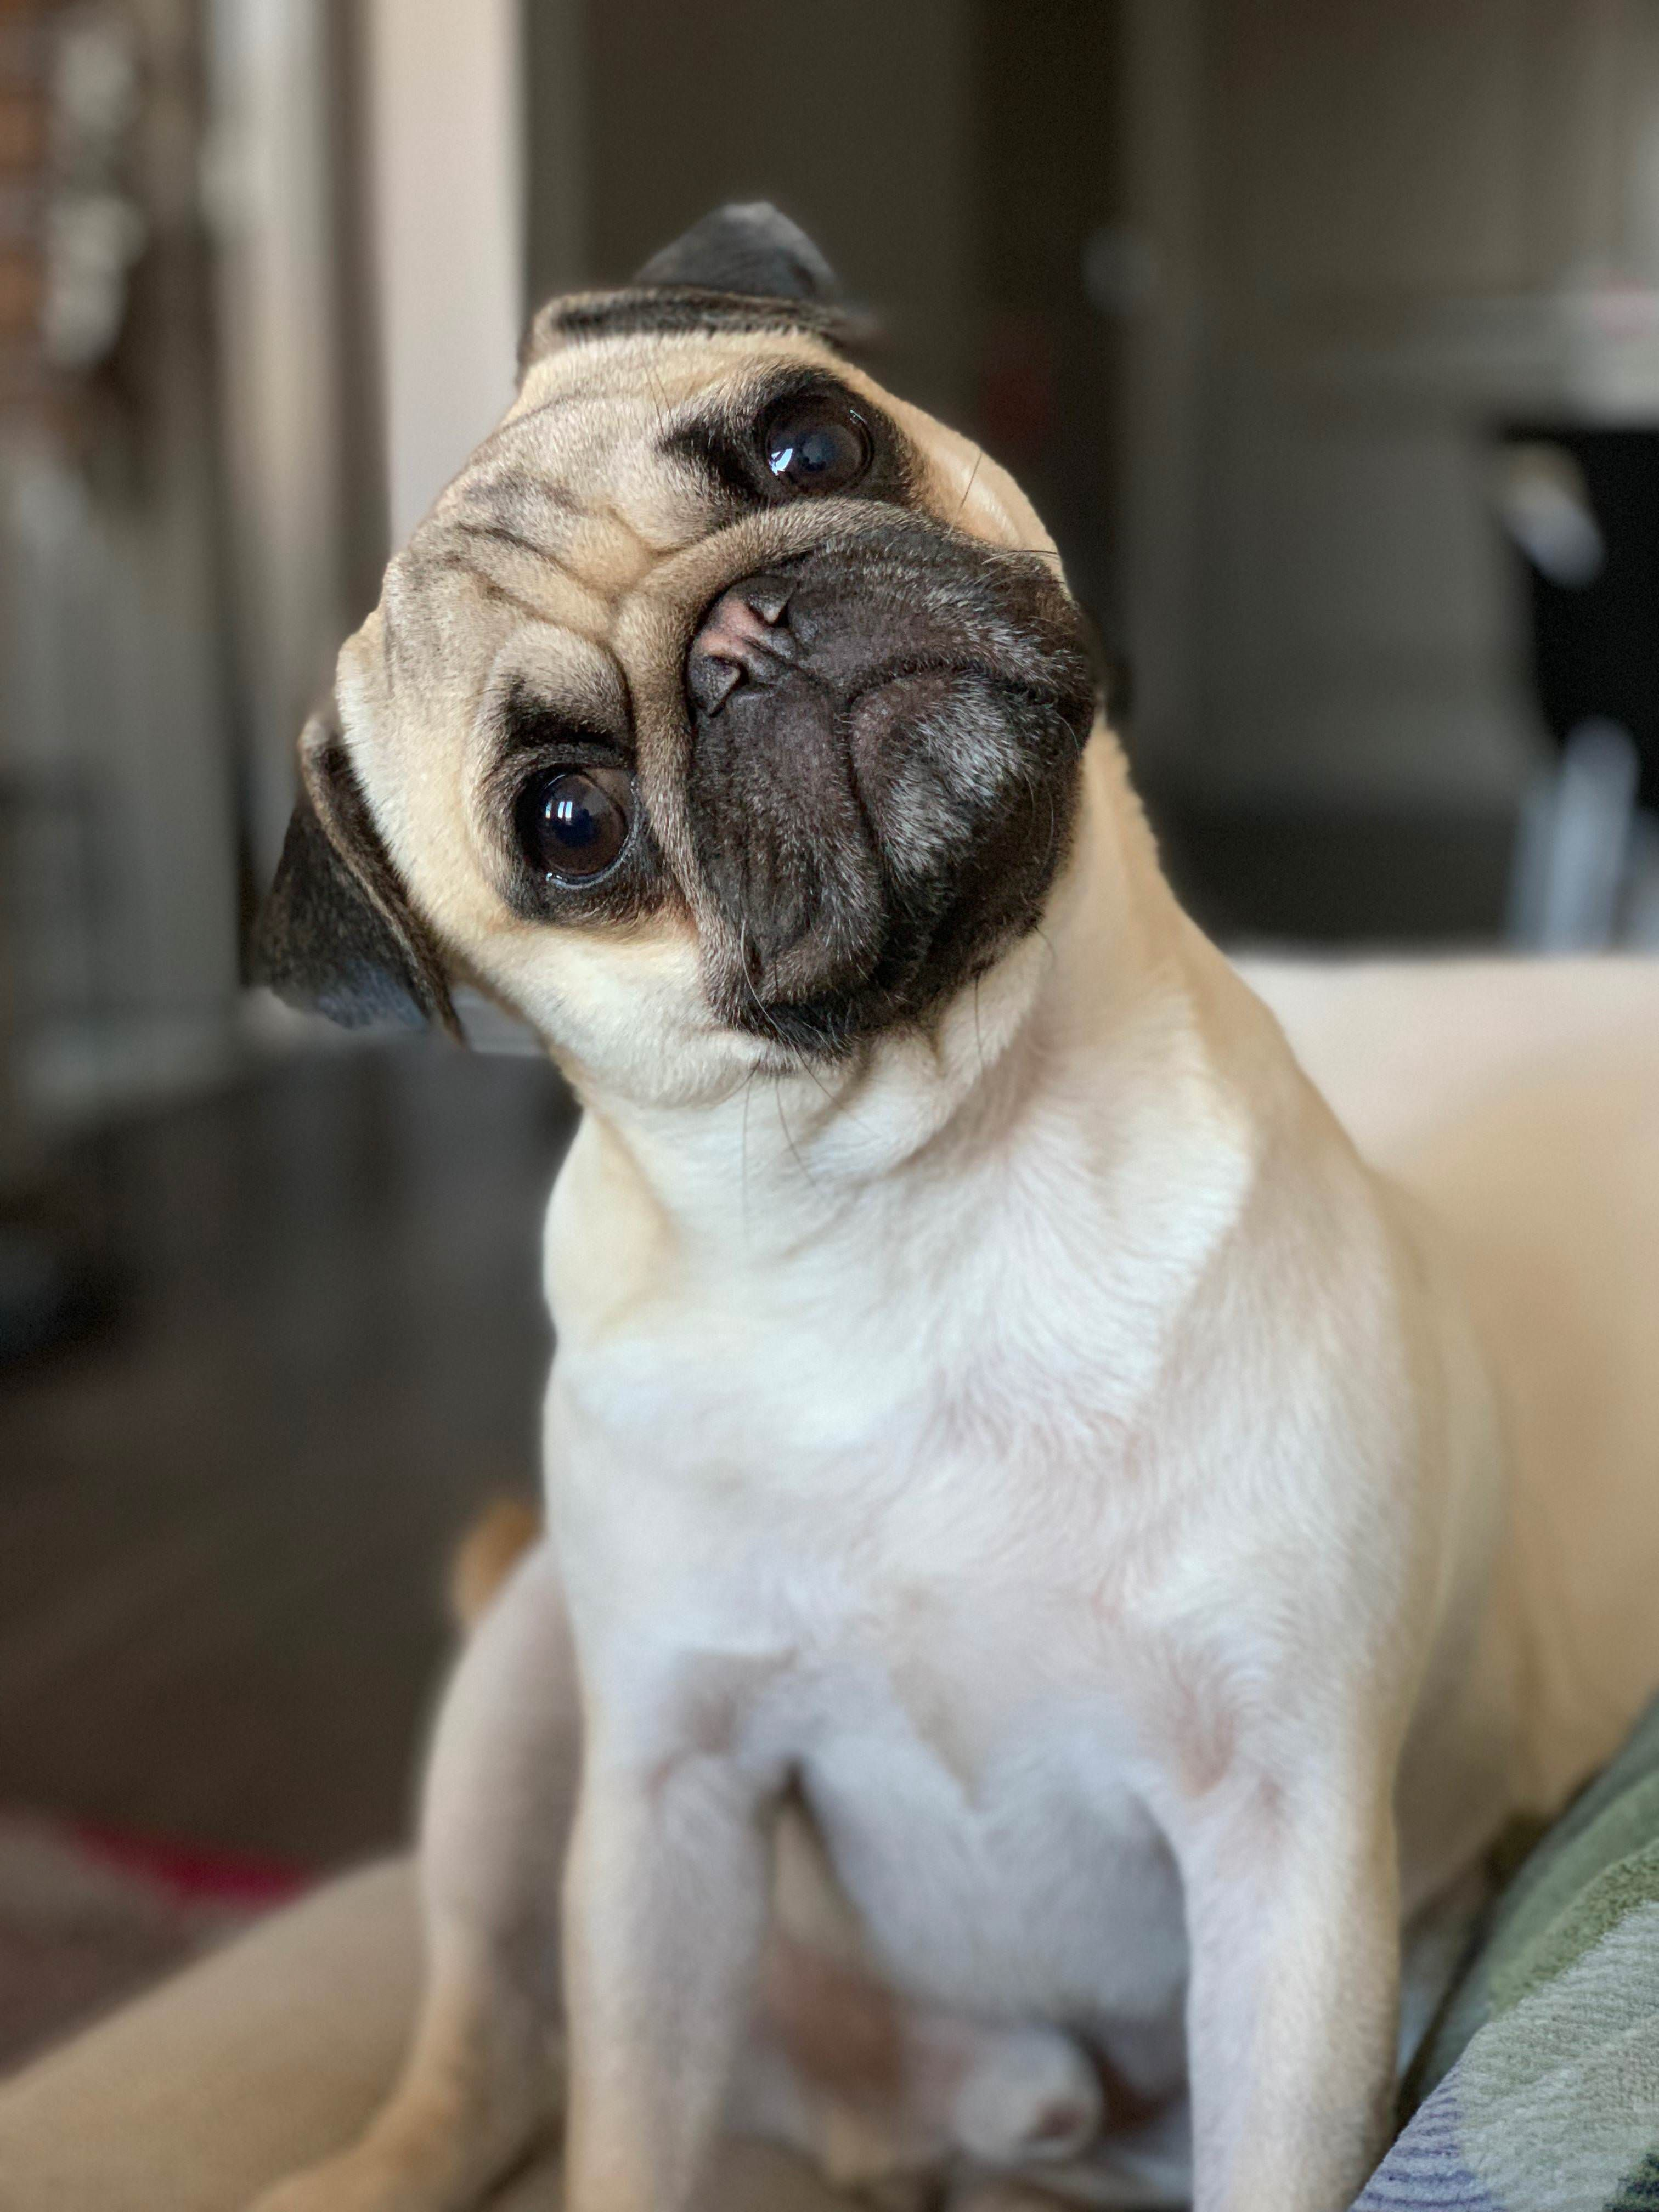 Did You Say Dinner Https Ift Tt 2qrxjut Baby Pugs Pugs Cute